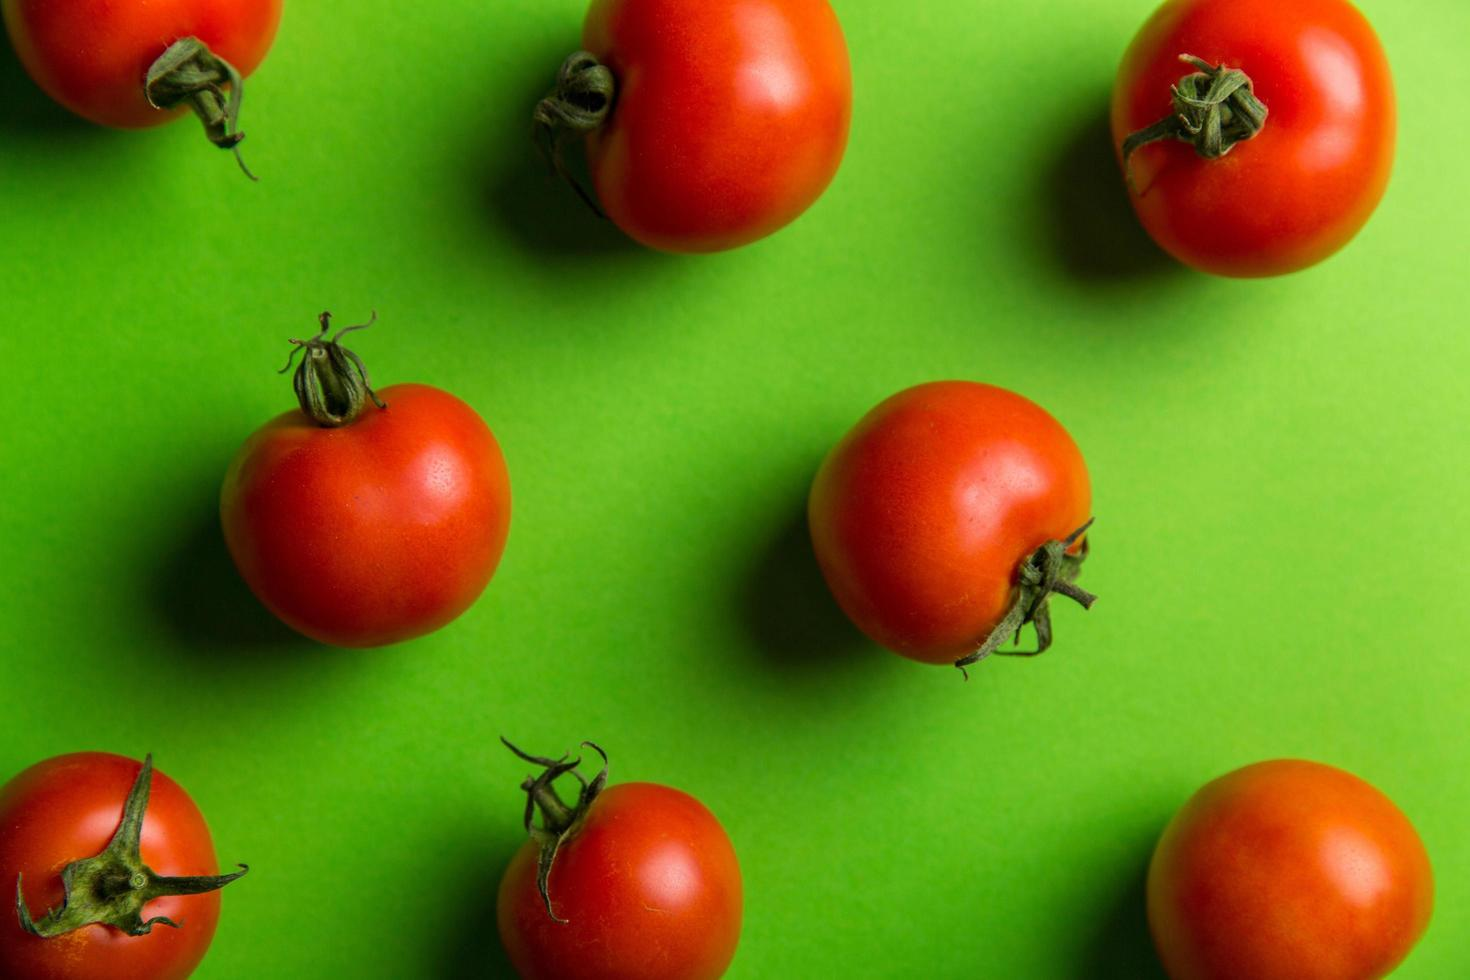 Ripe tomatoes on green background photo